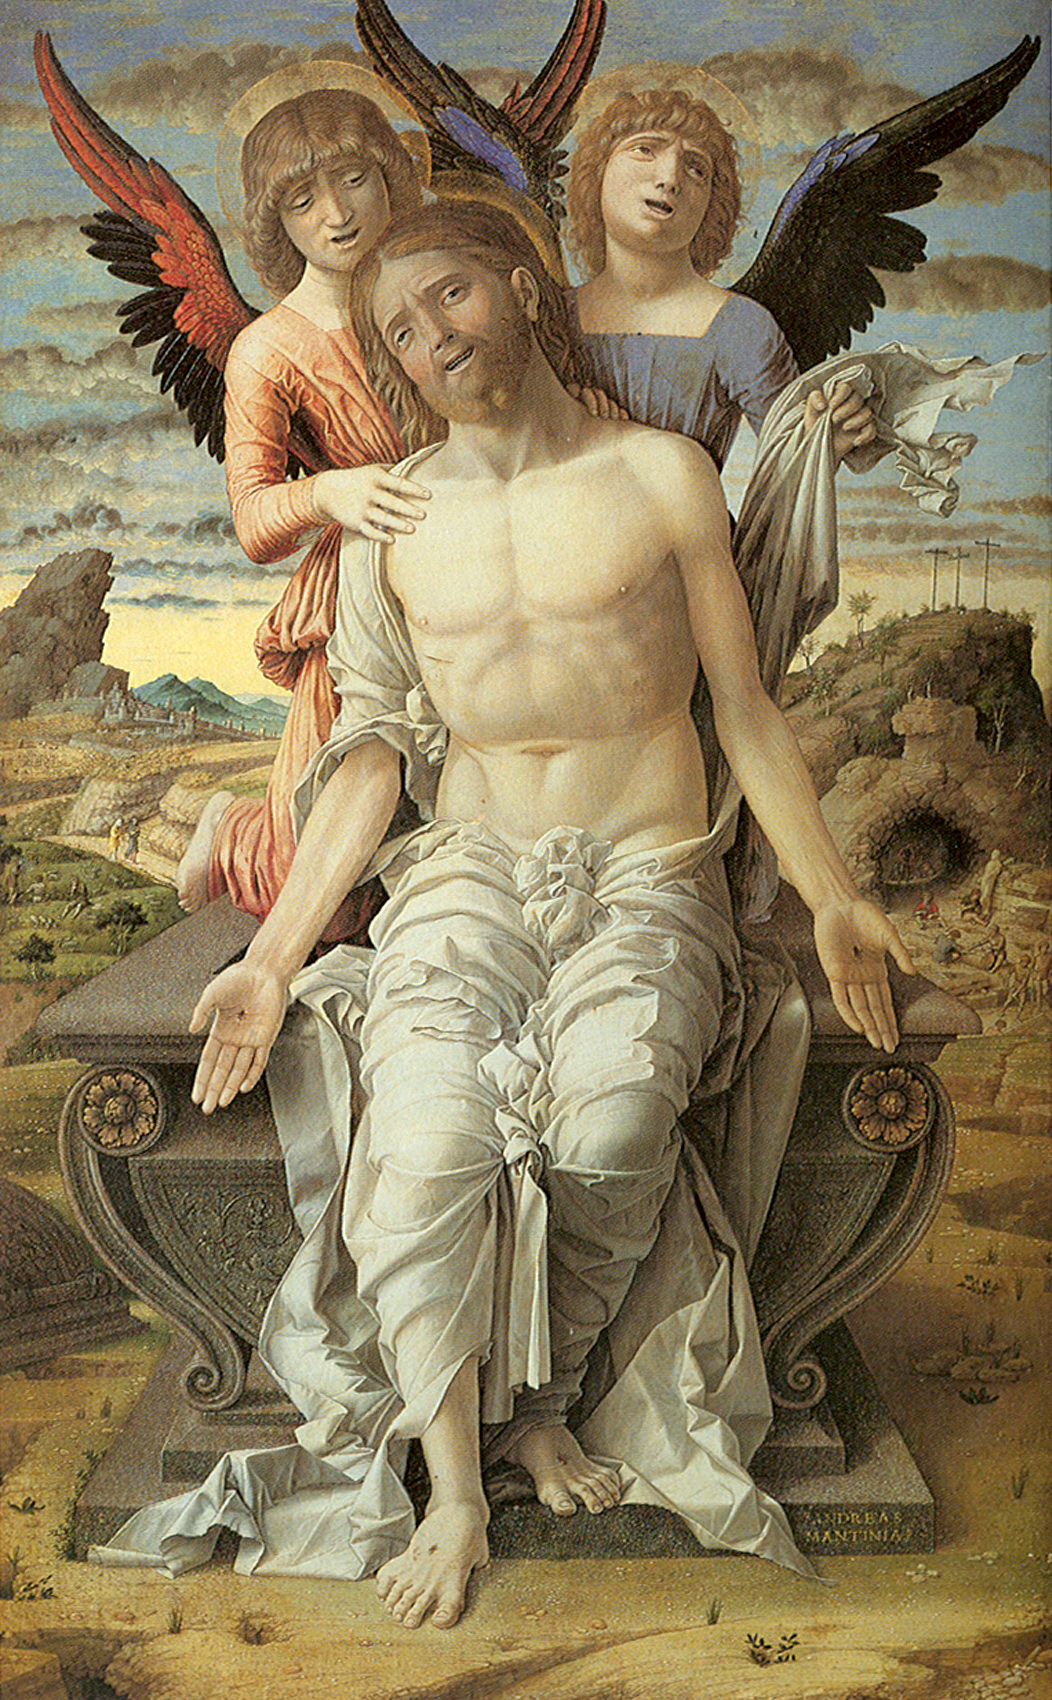 https://i1.wp.com/upload.wikimedia.org/wikipedia/commons/8/89/Andrea_Mantegna_035.jpg